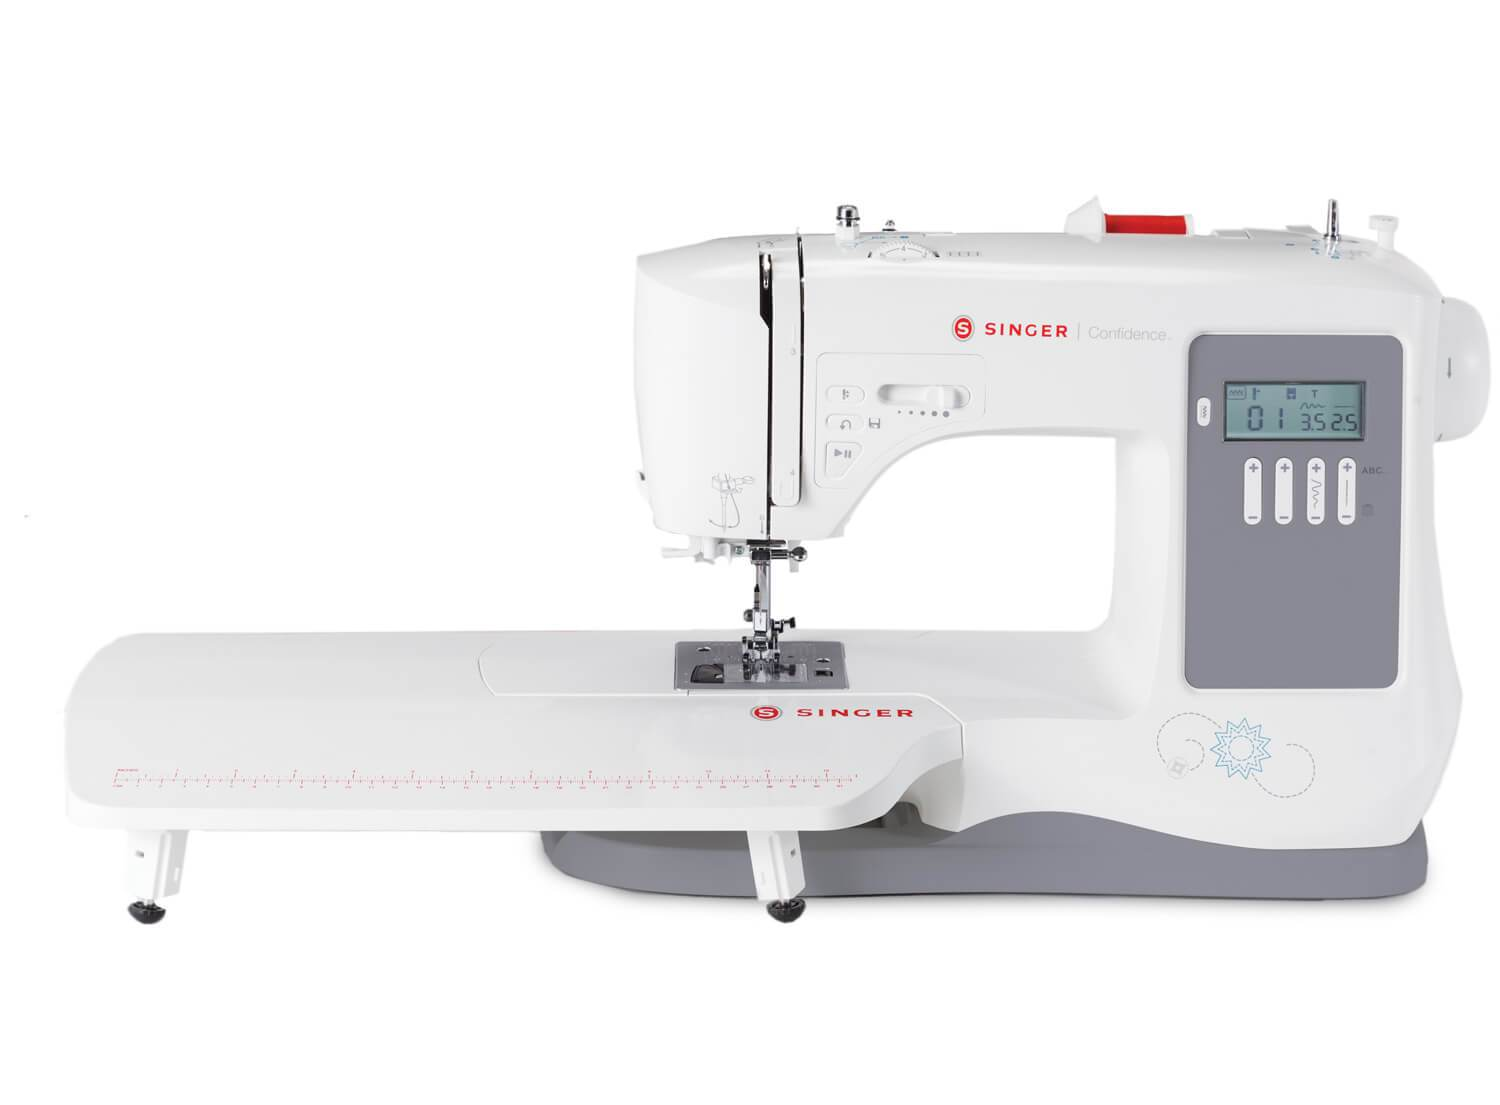 Singer Confidence 7640 Sewing Machine with Free Extension table